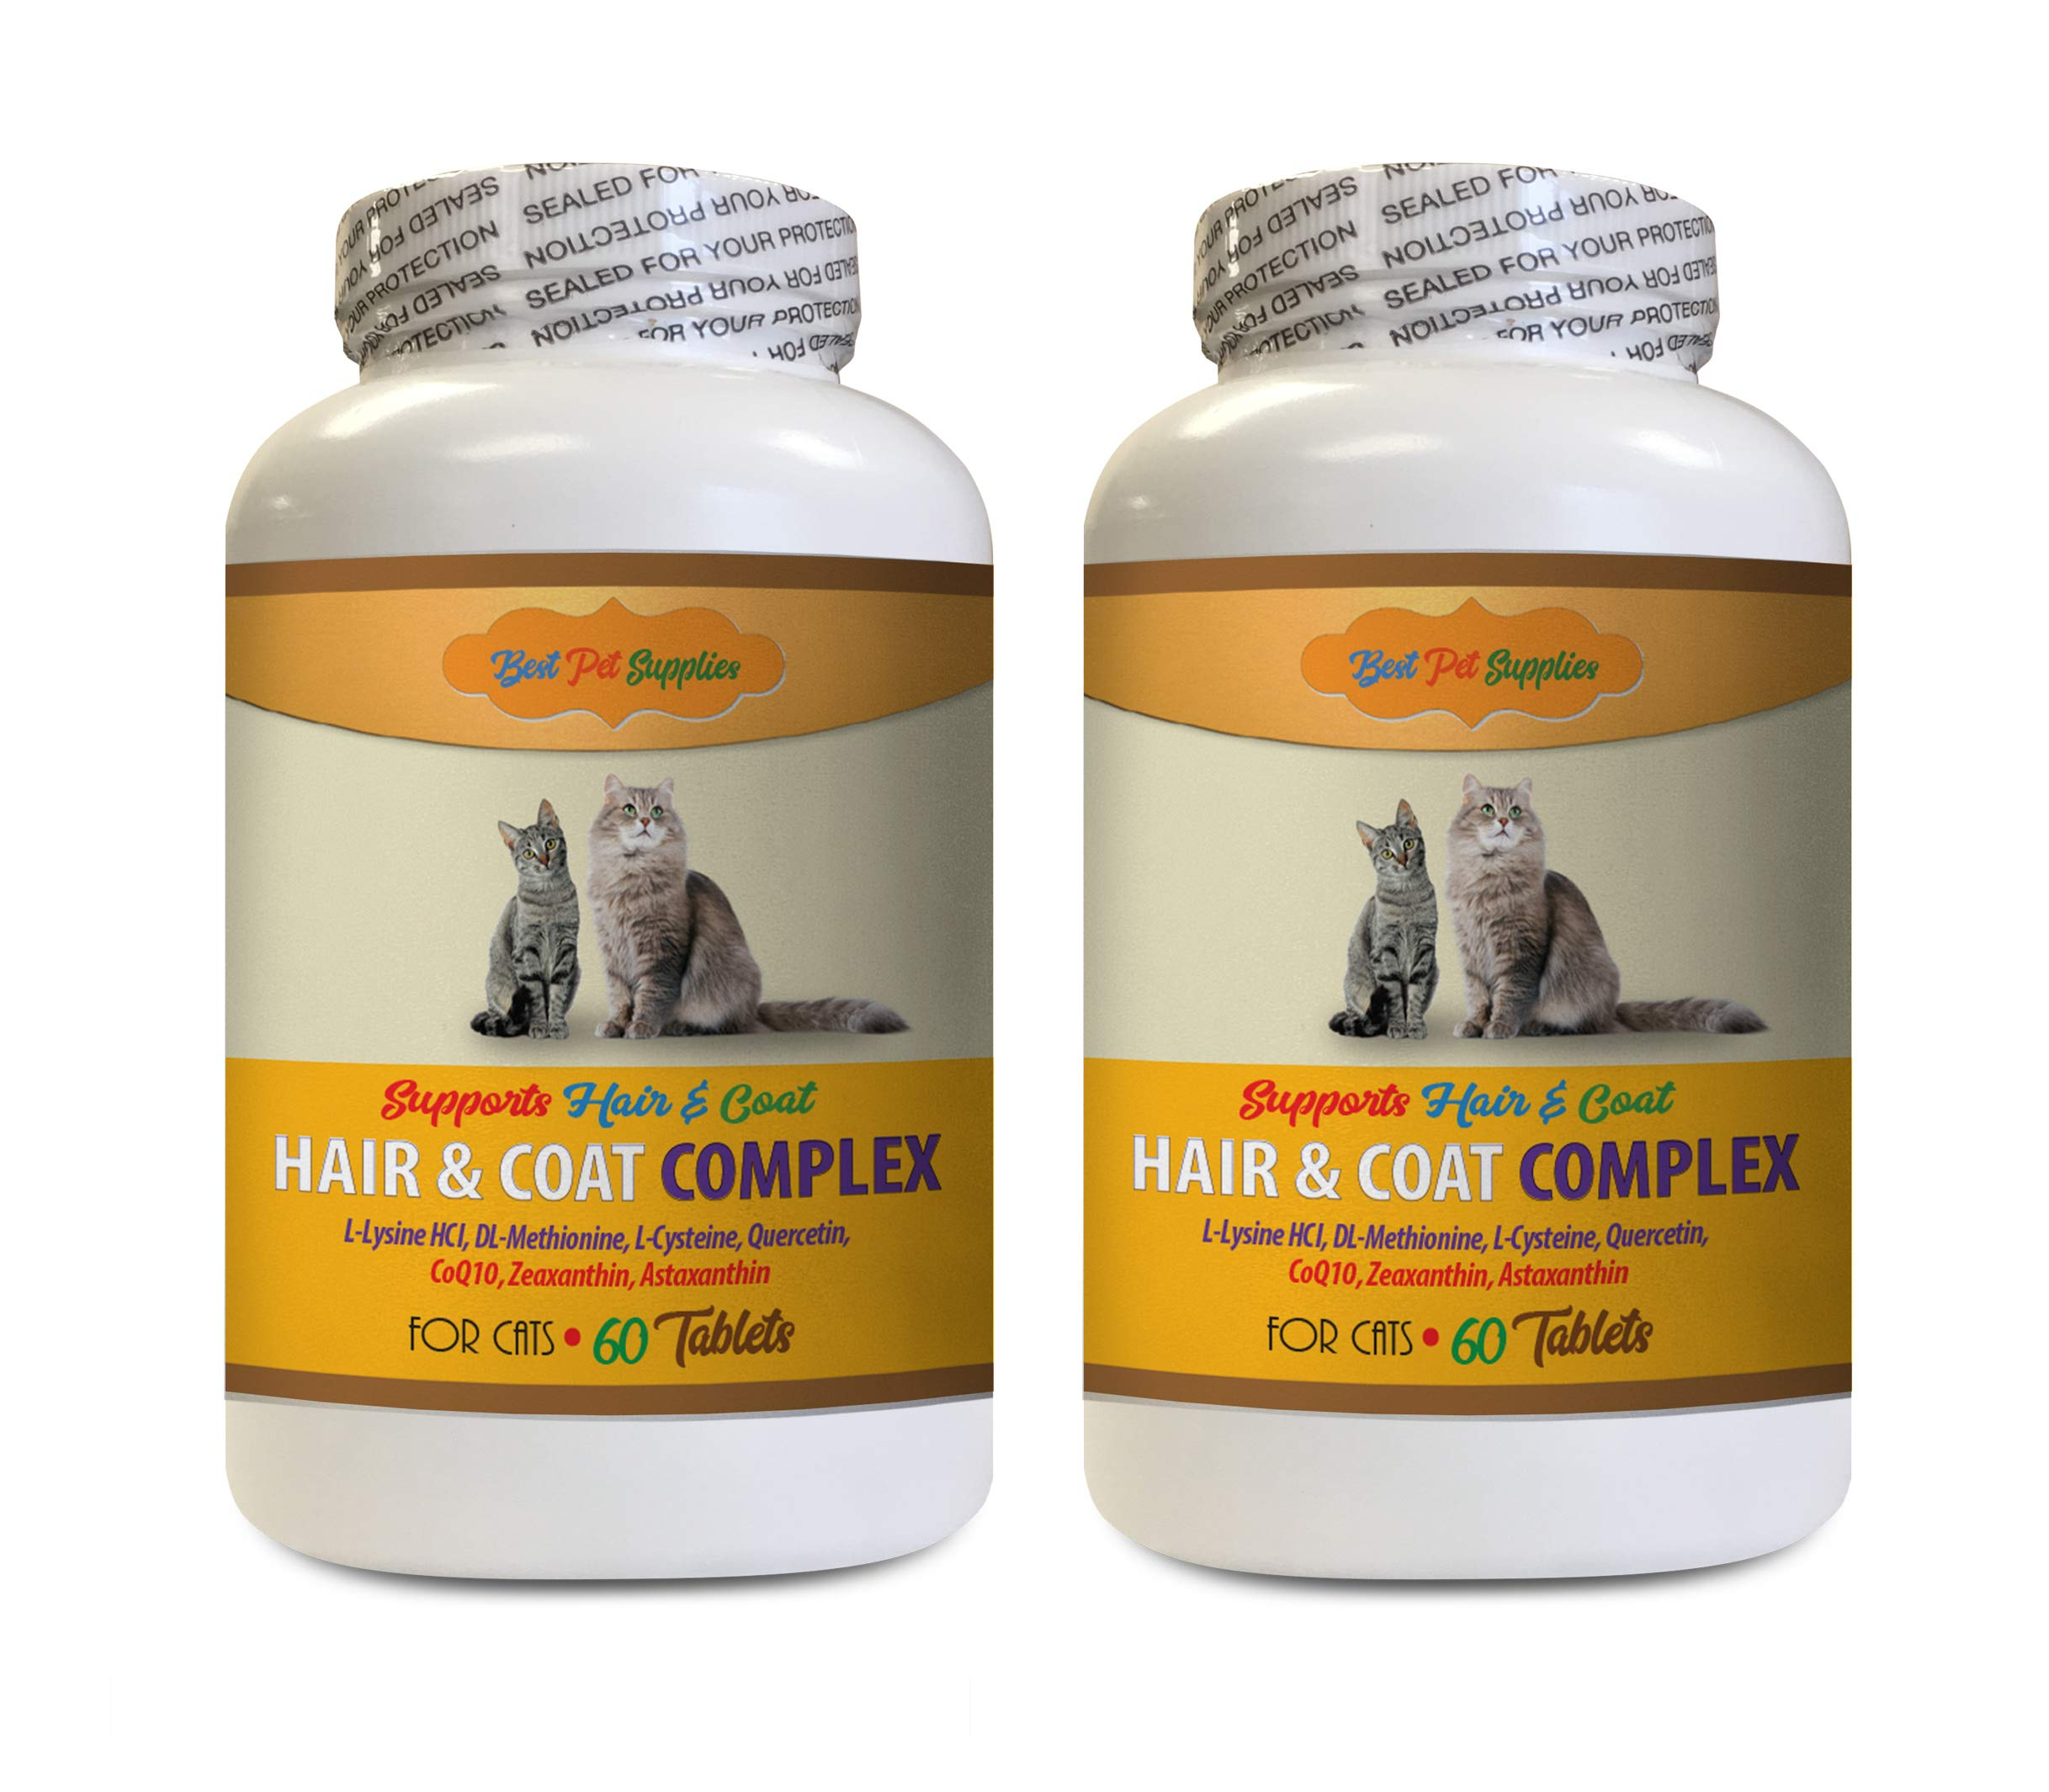 cat Itchy Skin Relief - Best Cats Hair and Coat Complex - Itch Relief Support - Nail Health - cat Vitamin b Supplement - 120 Tablets (2 Bottles) by BEST PET SUPPLIES LLC